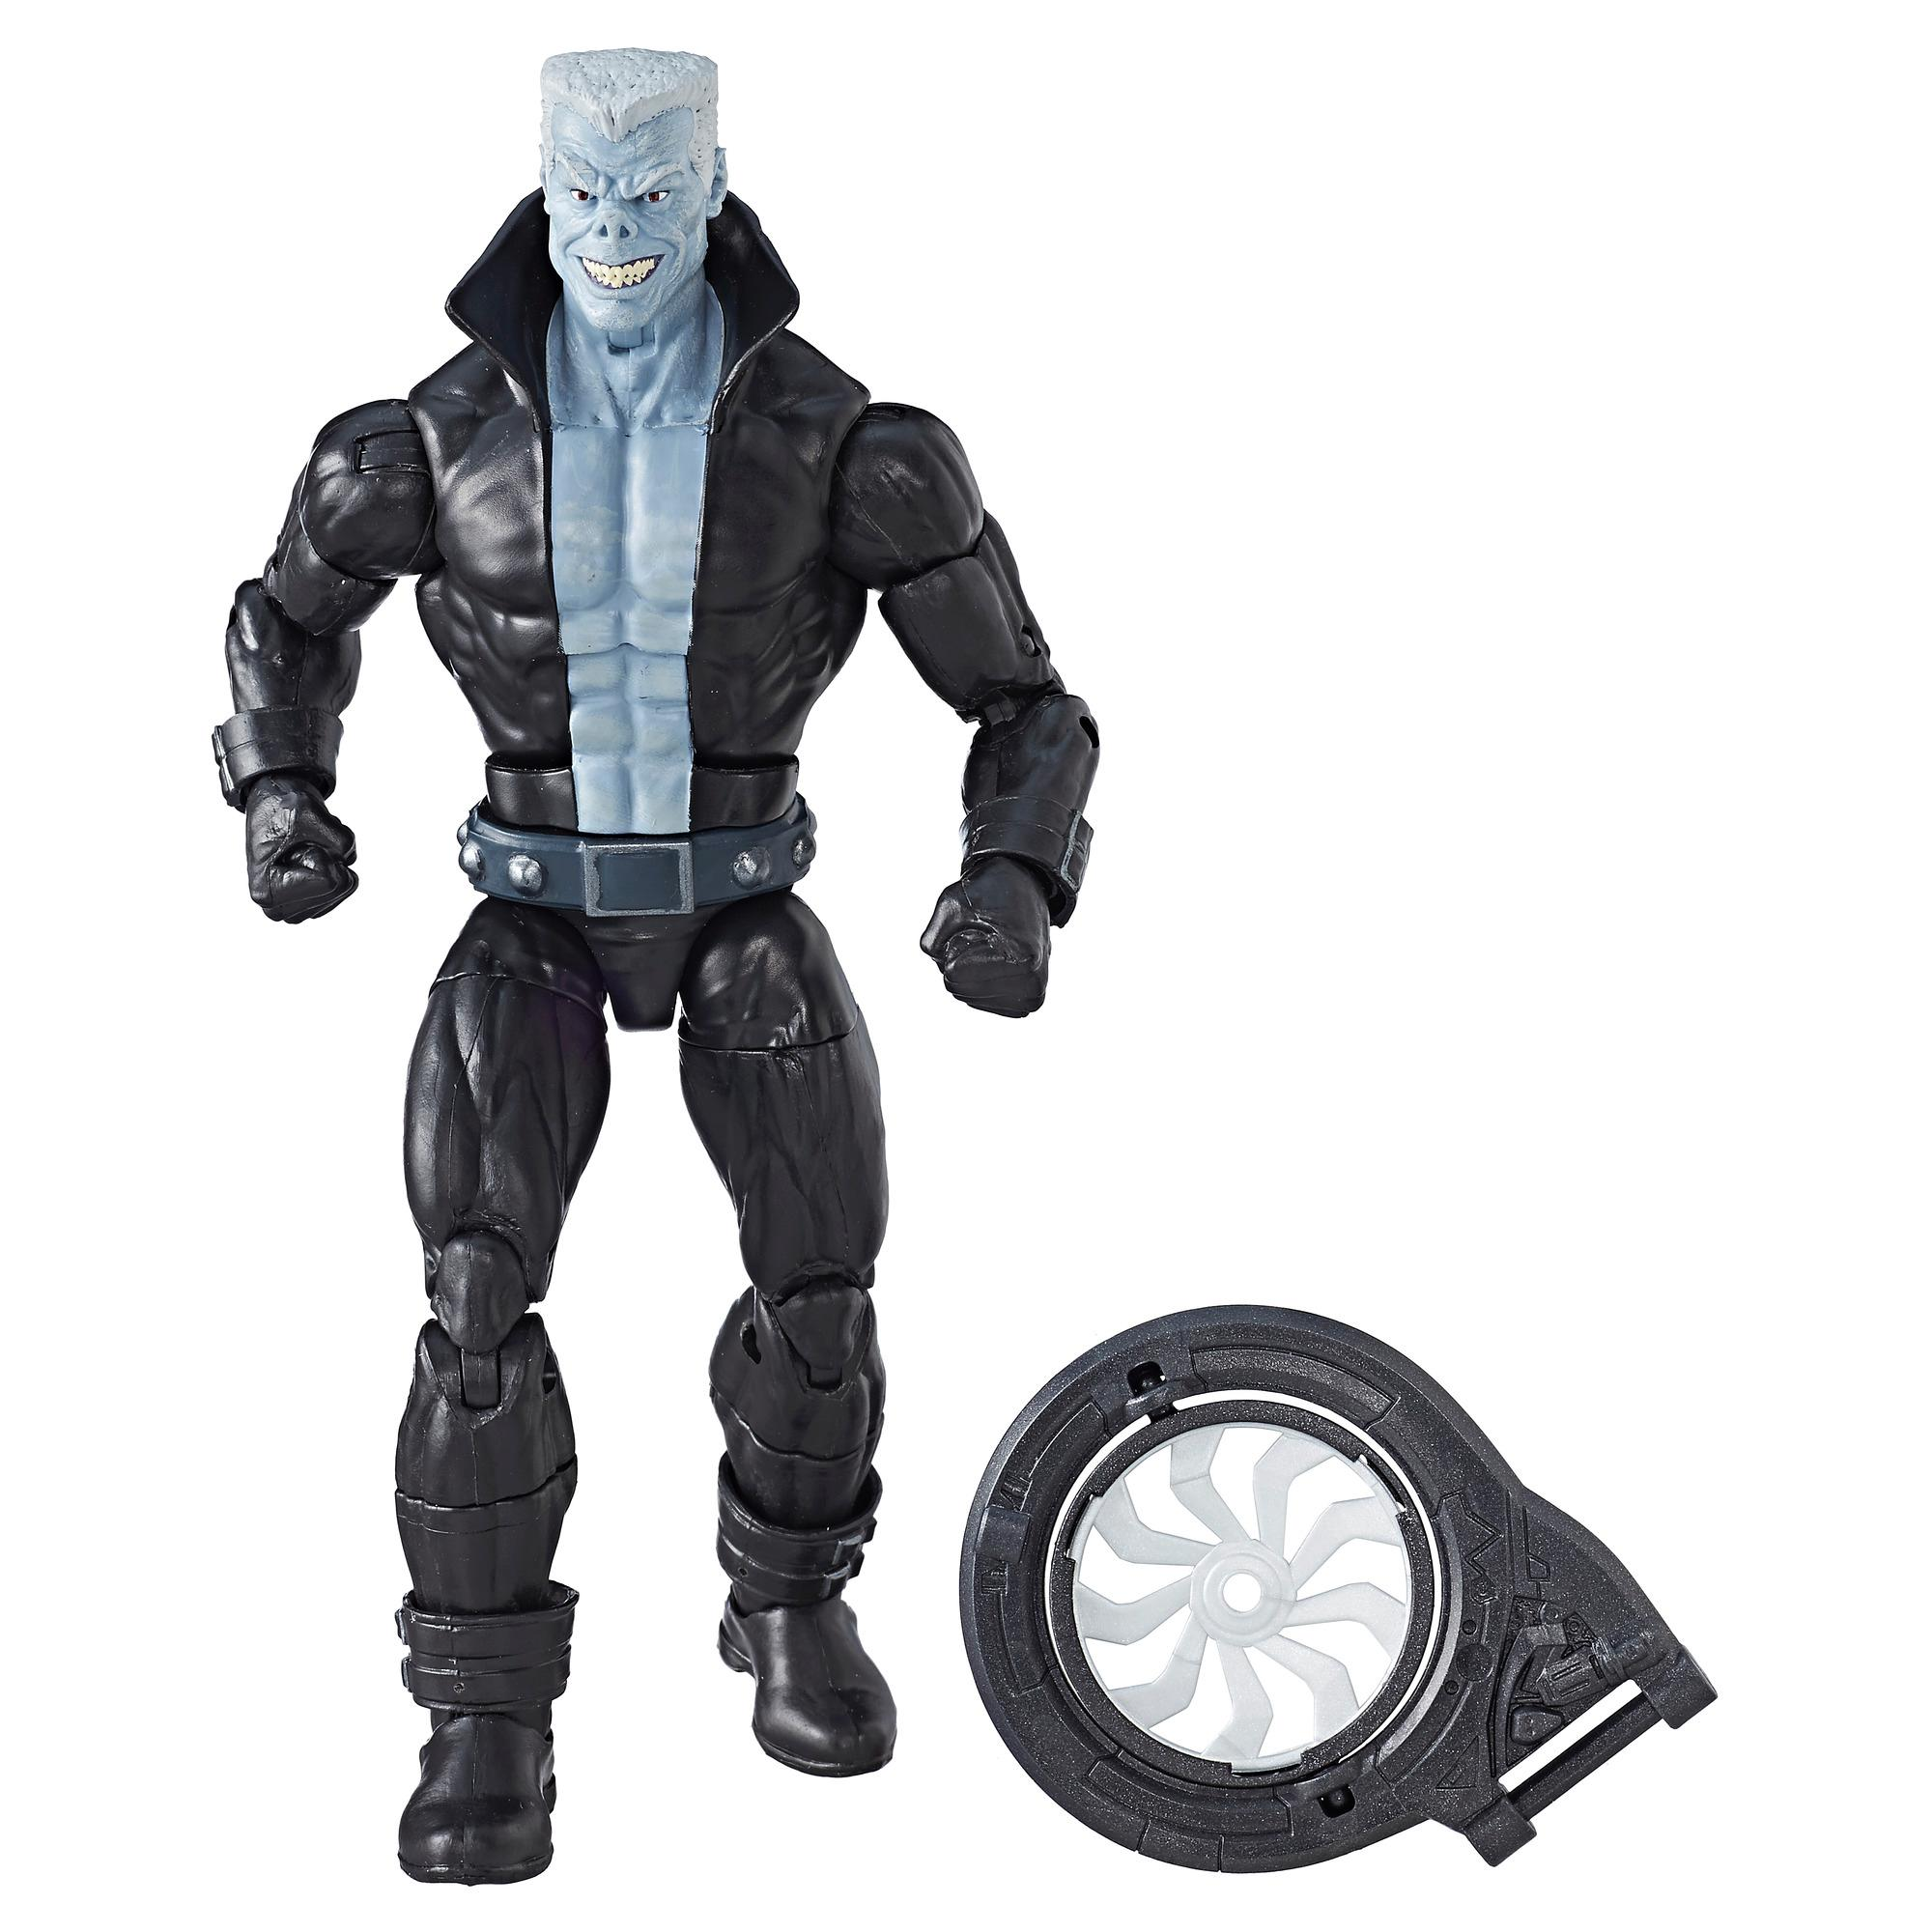 Marvel Spider-Man 6-inch Legends Series Sinister Villains: Marvel's Tombstone